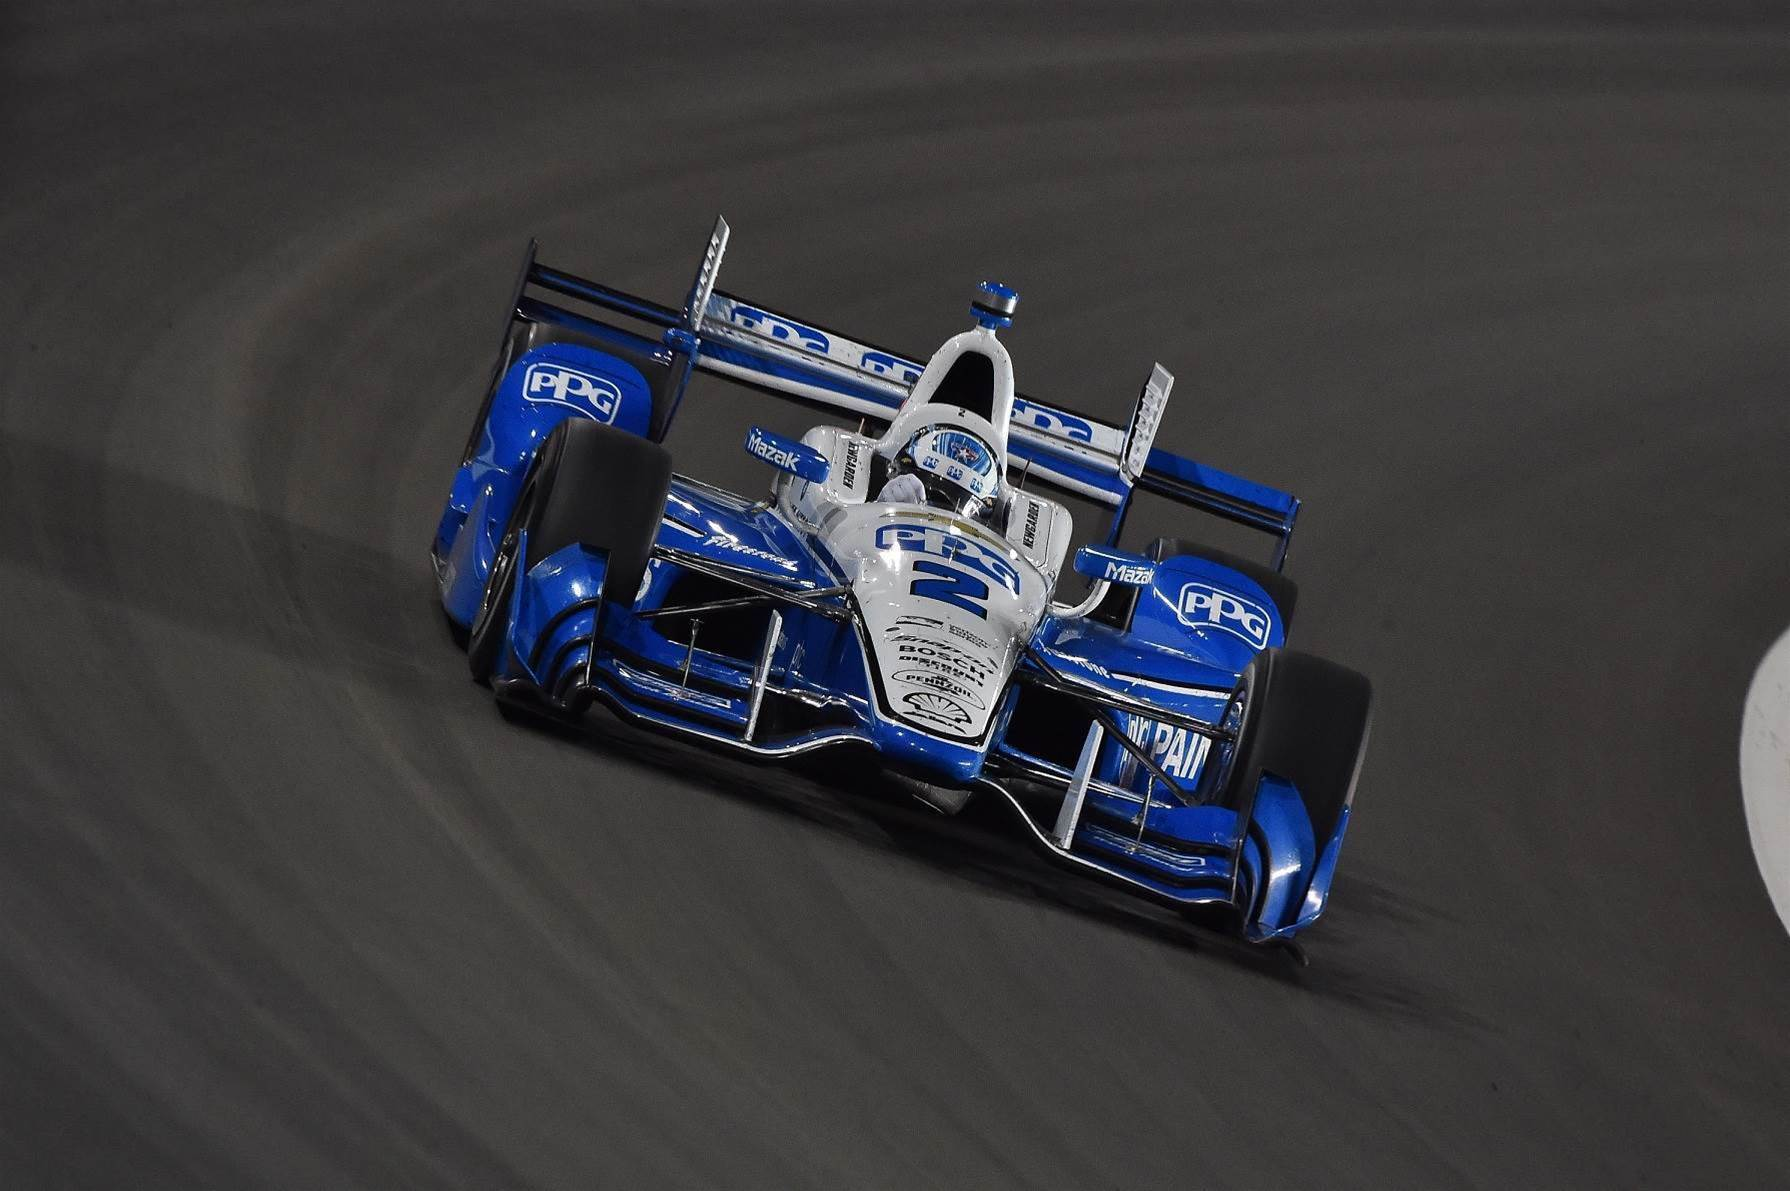 Pic gallery: Gateway Indycars